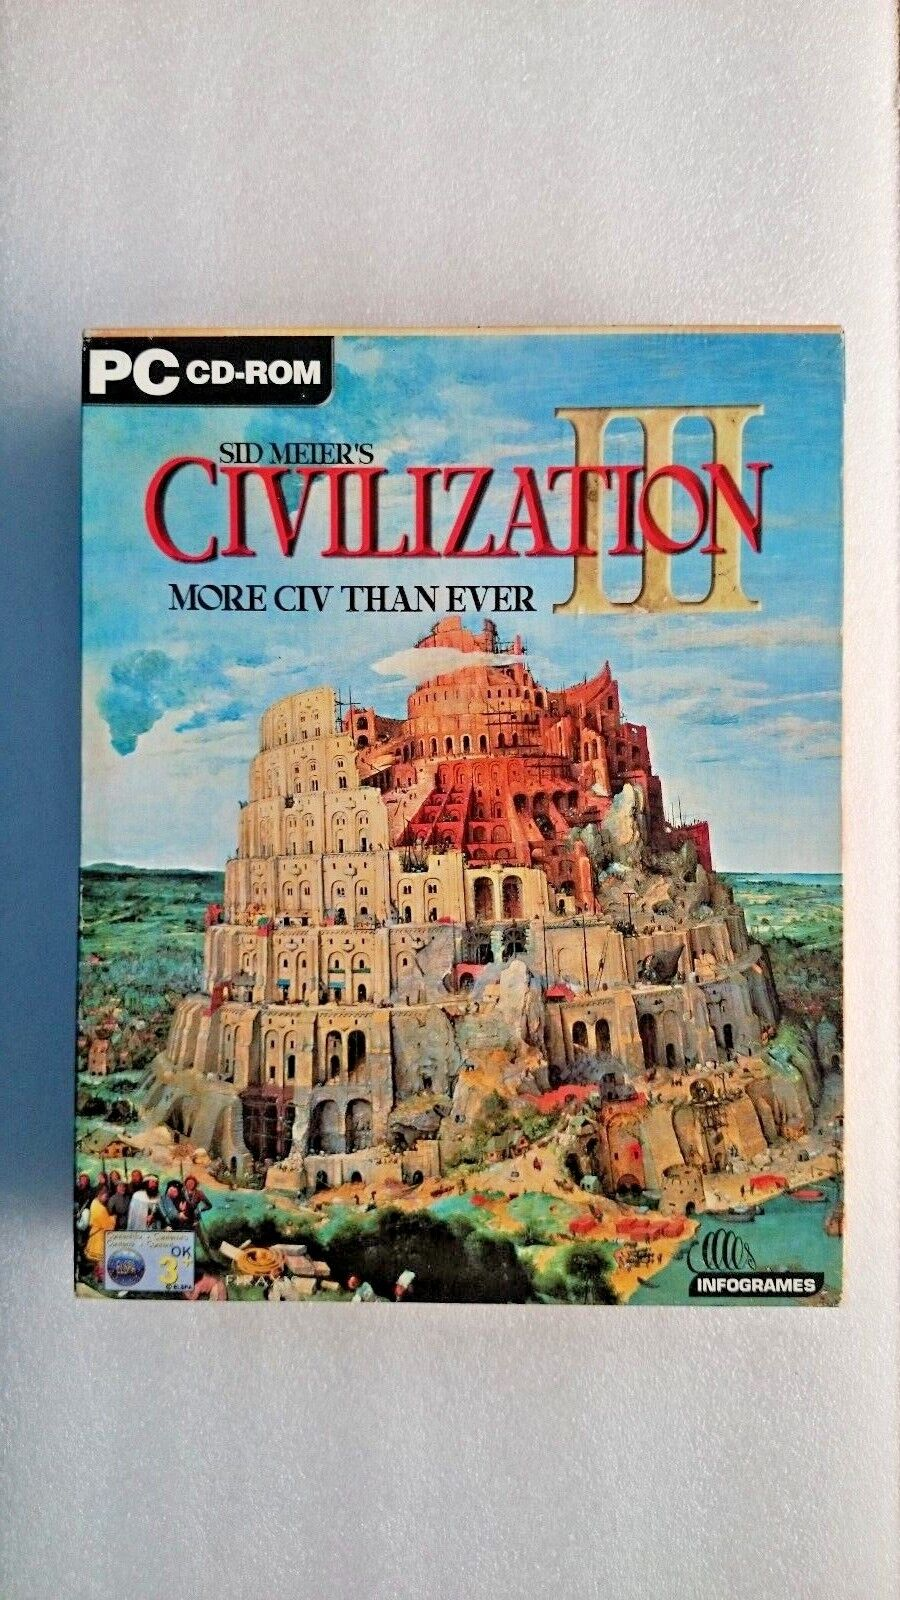 Sid Meier's Civilization 3 for PC  (Windows) - Big Box Edition